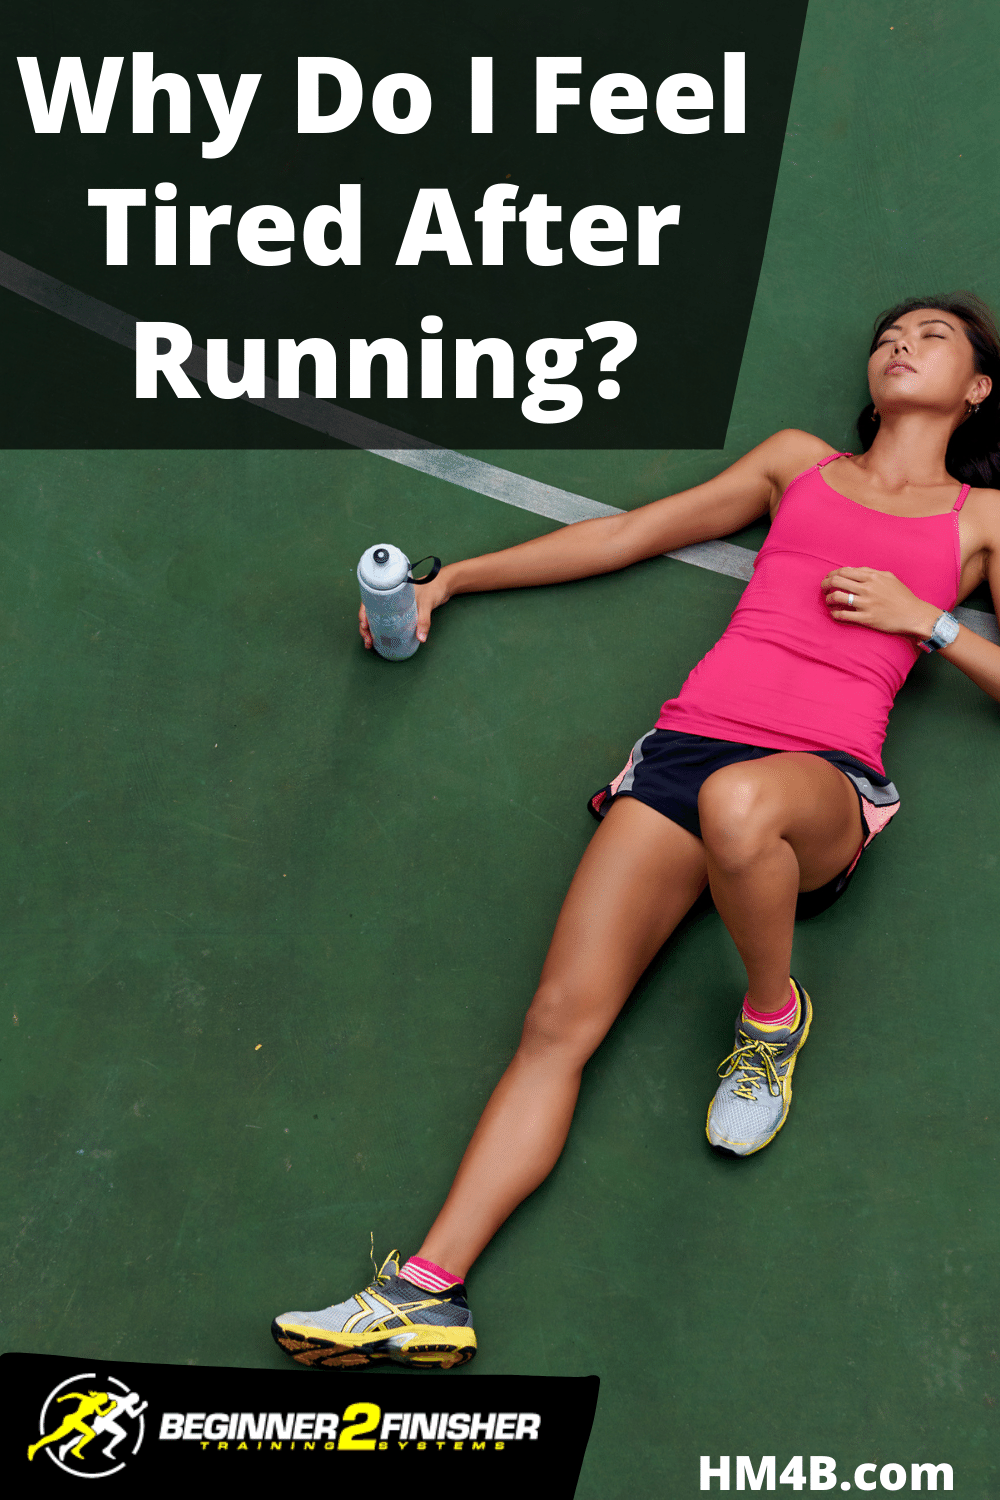 Why Do I Feel Tired After Running?